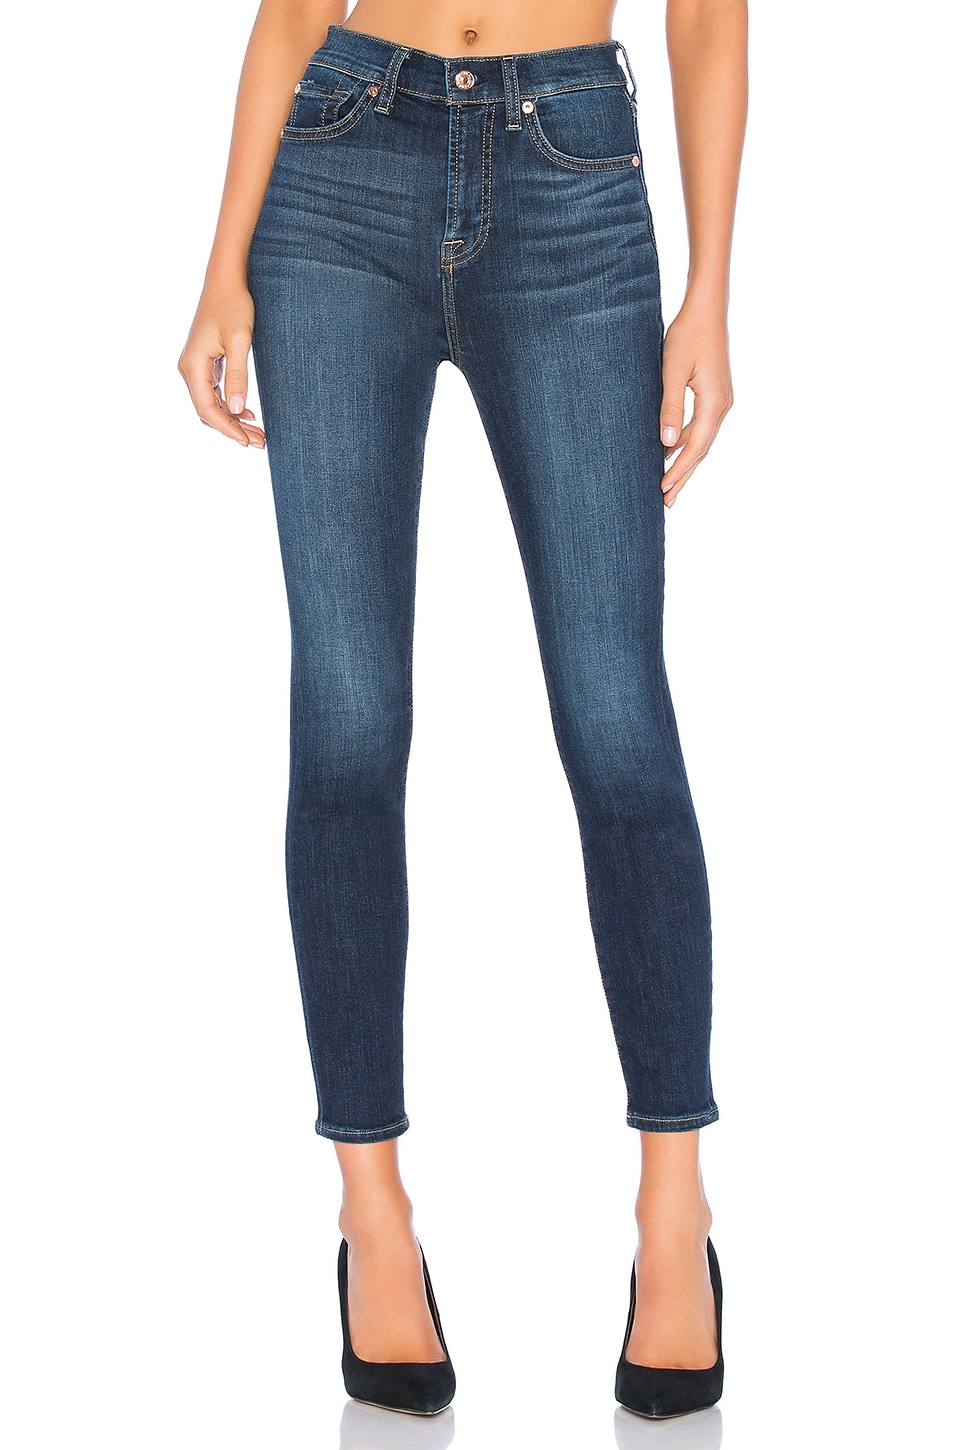 7 For All Mankind Aubrey Skinny in B(air) Authentic Fate